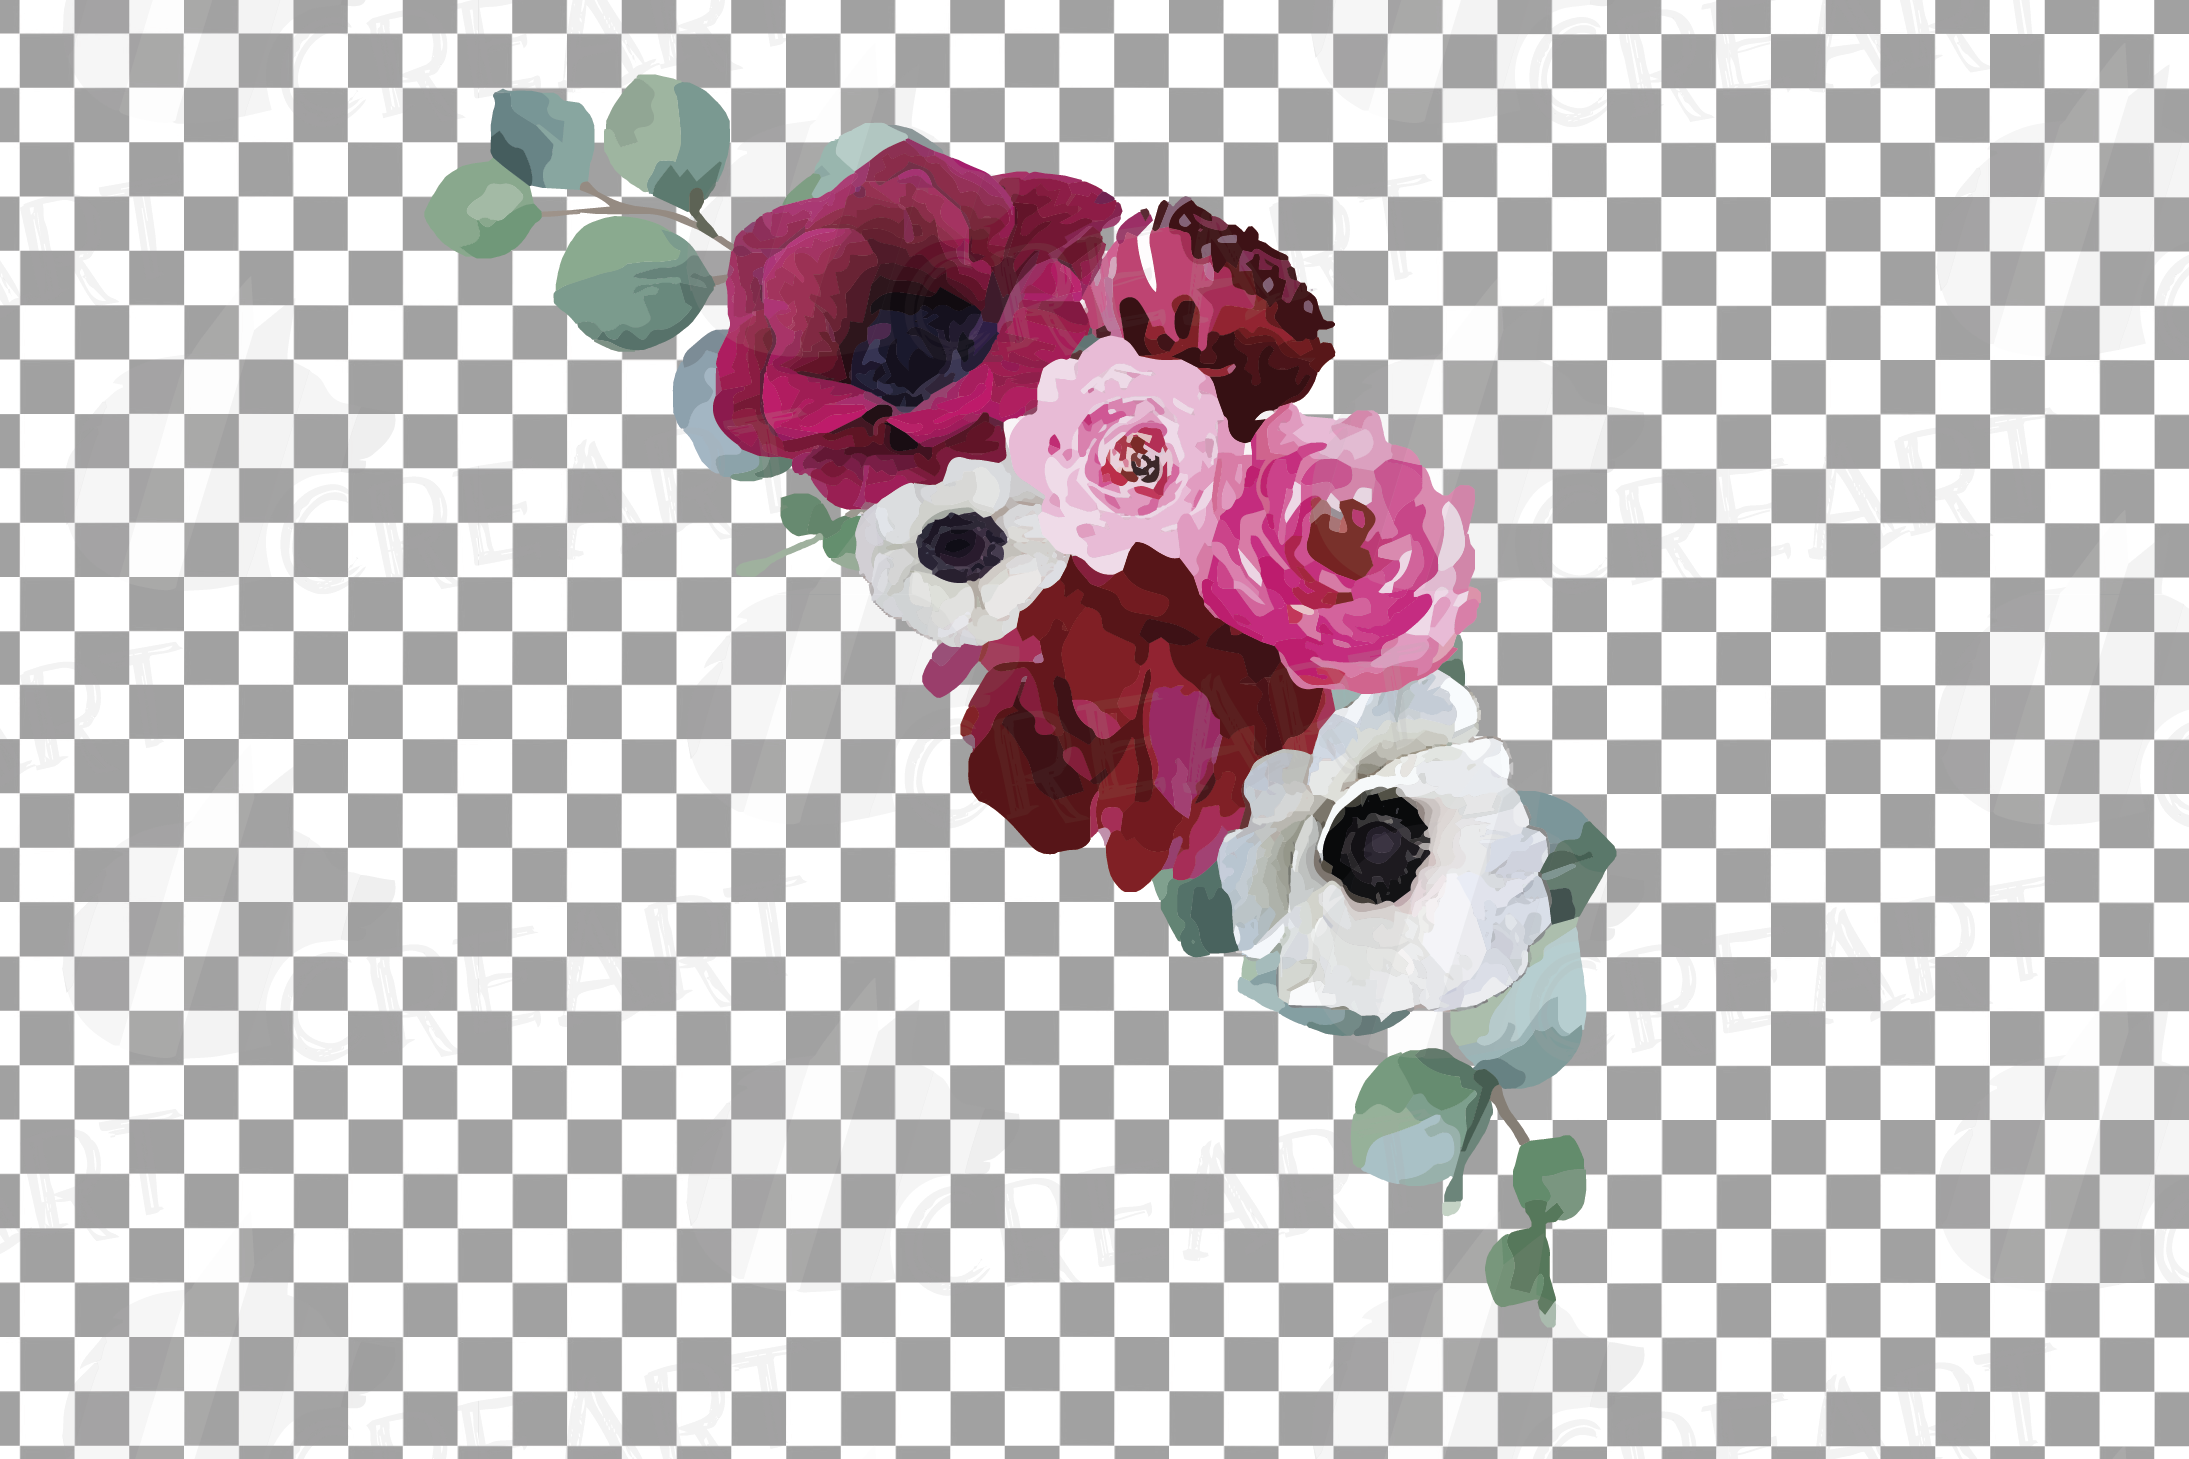 Watercolor elegant floral bouquets 2, rose, anemone decor example image 11